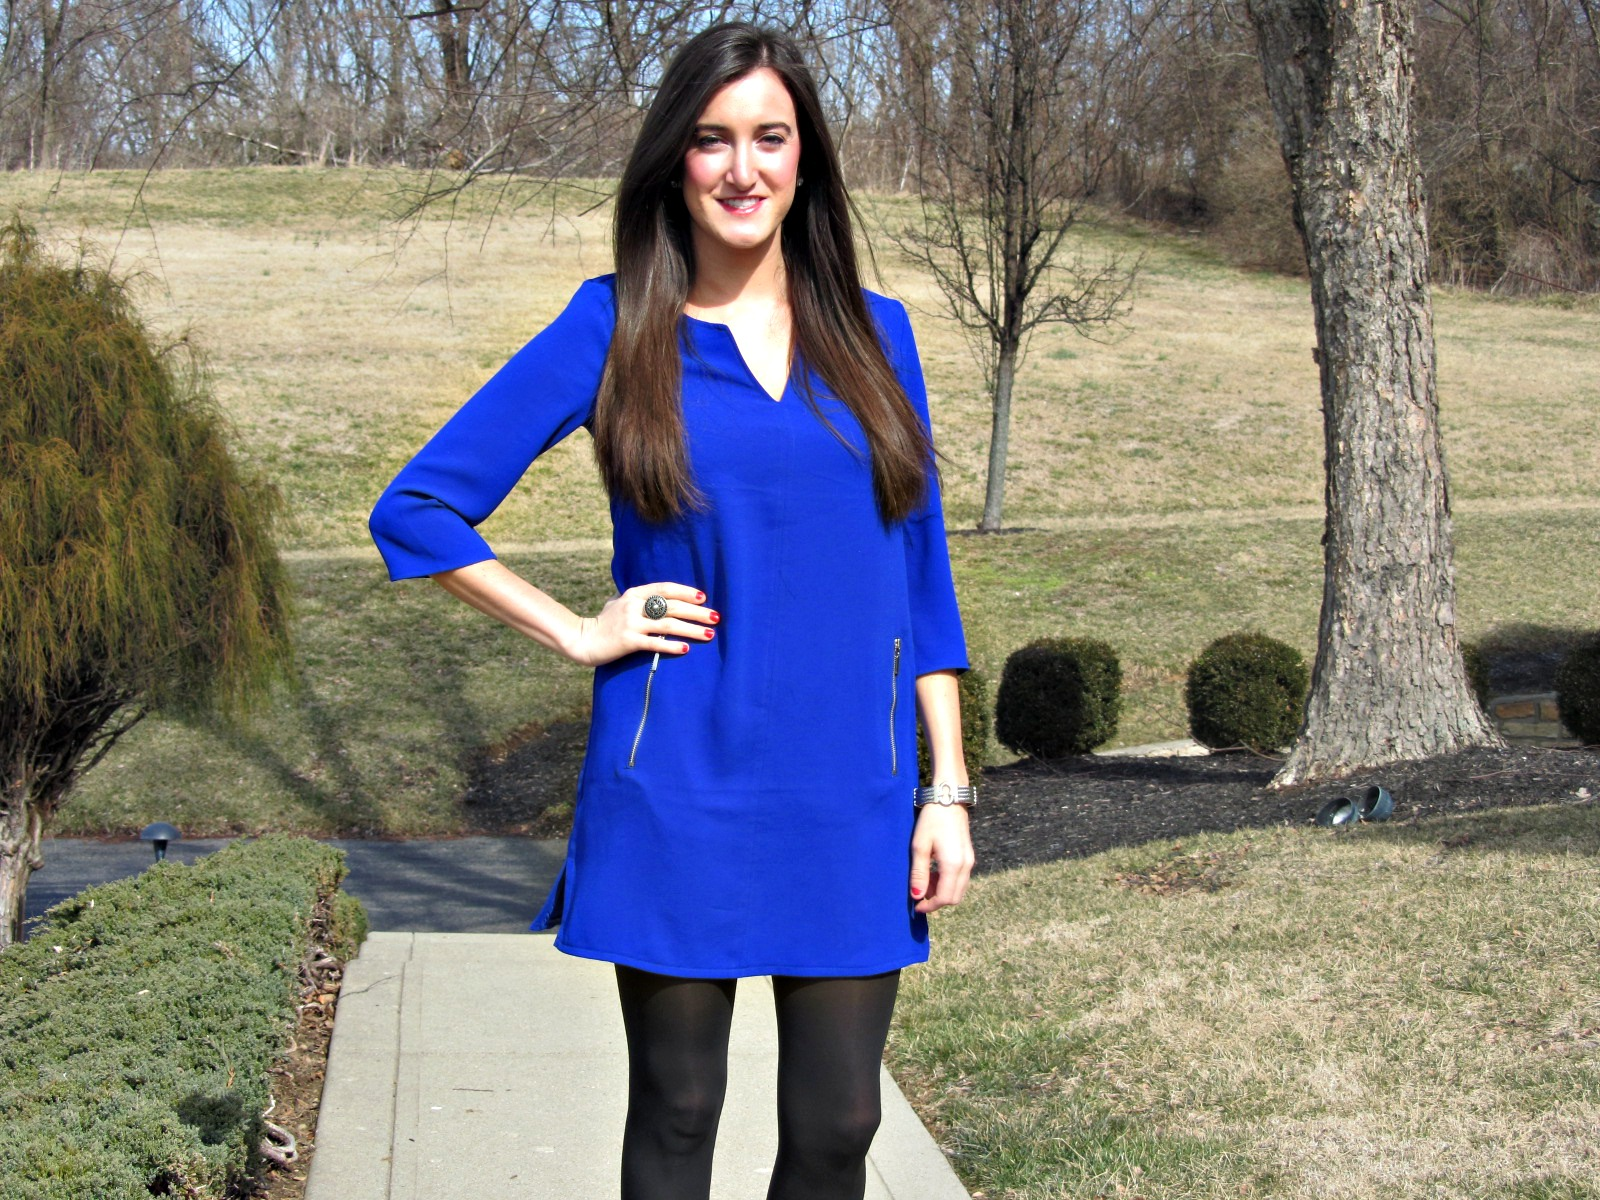 Cobalt Blue Dress Shoes